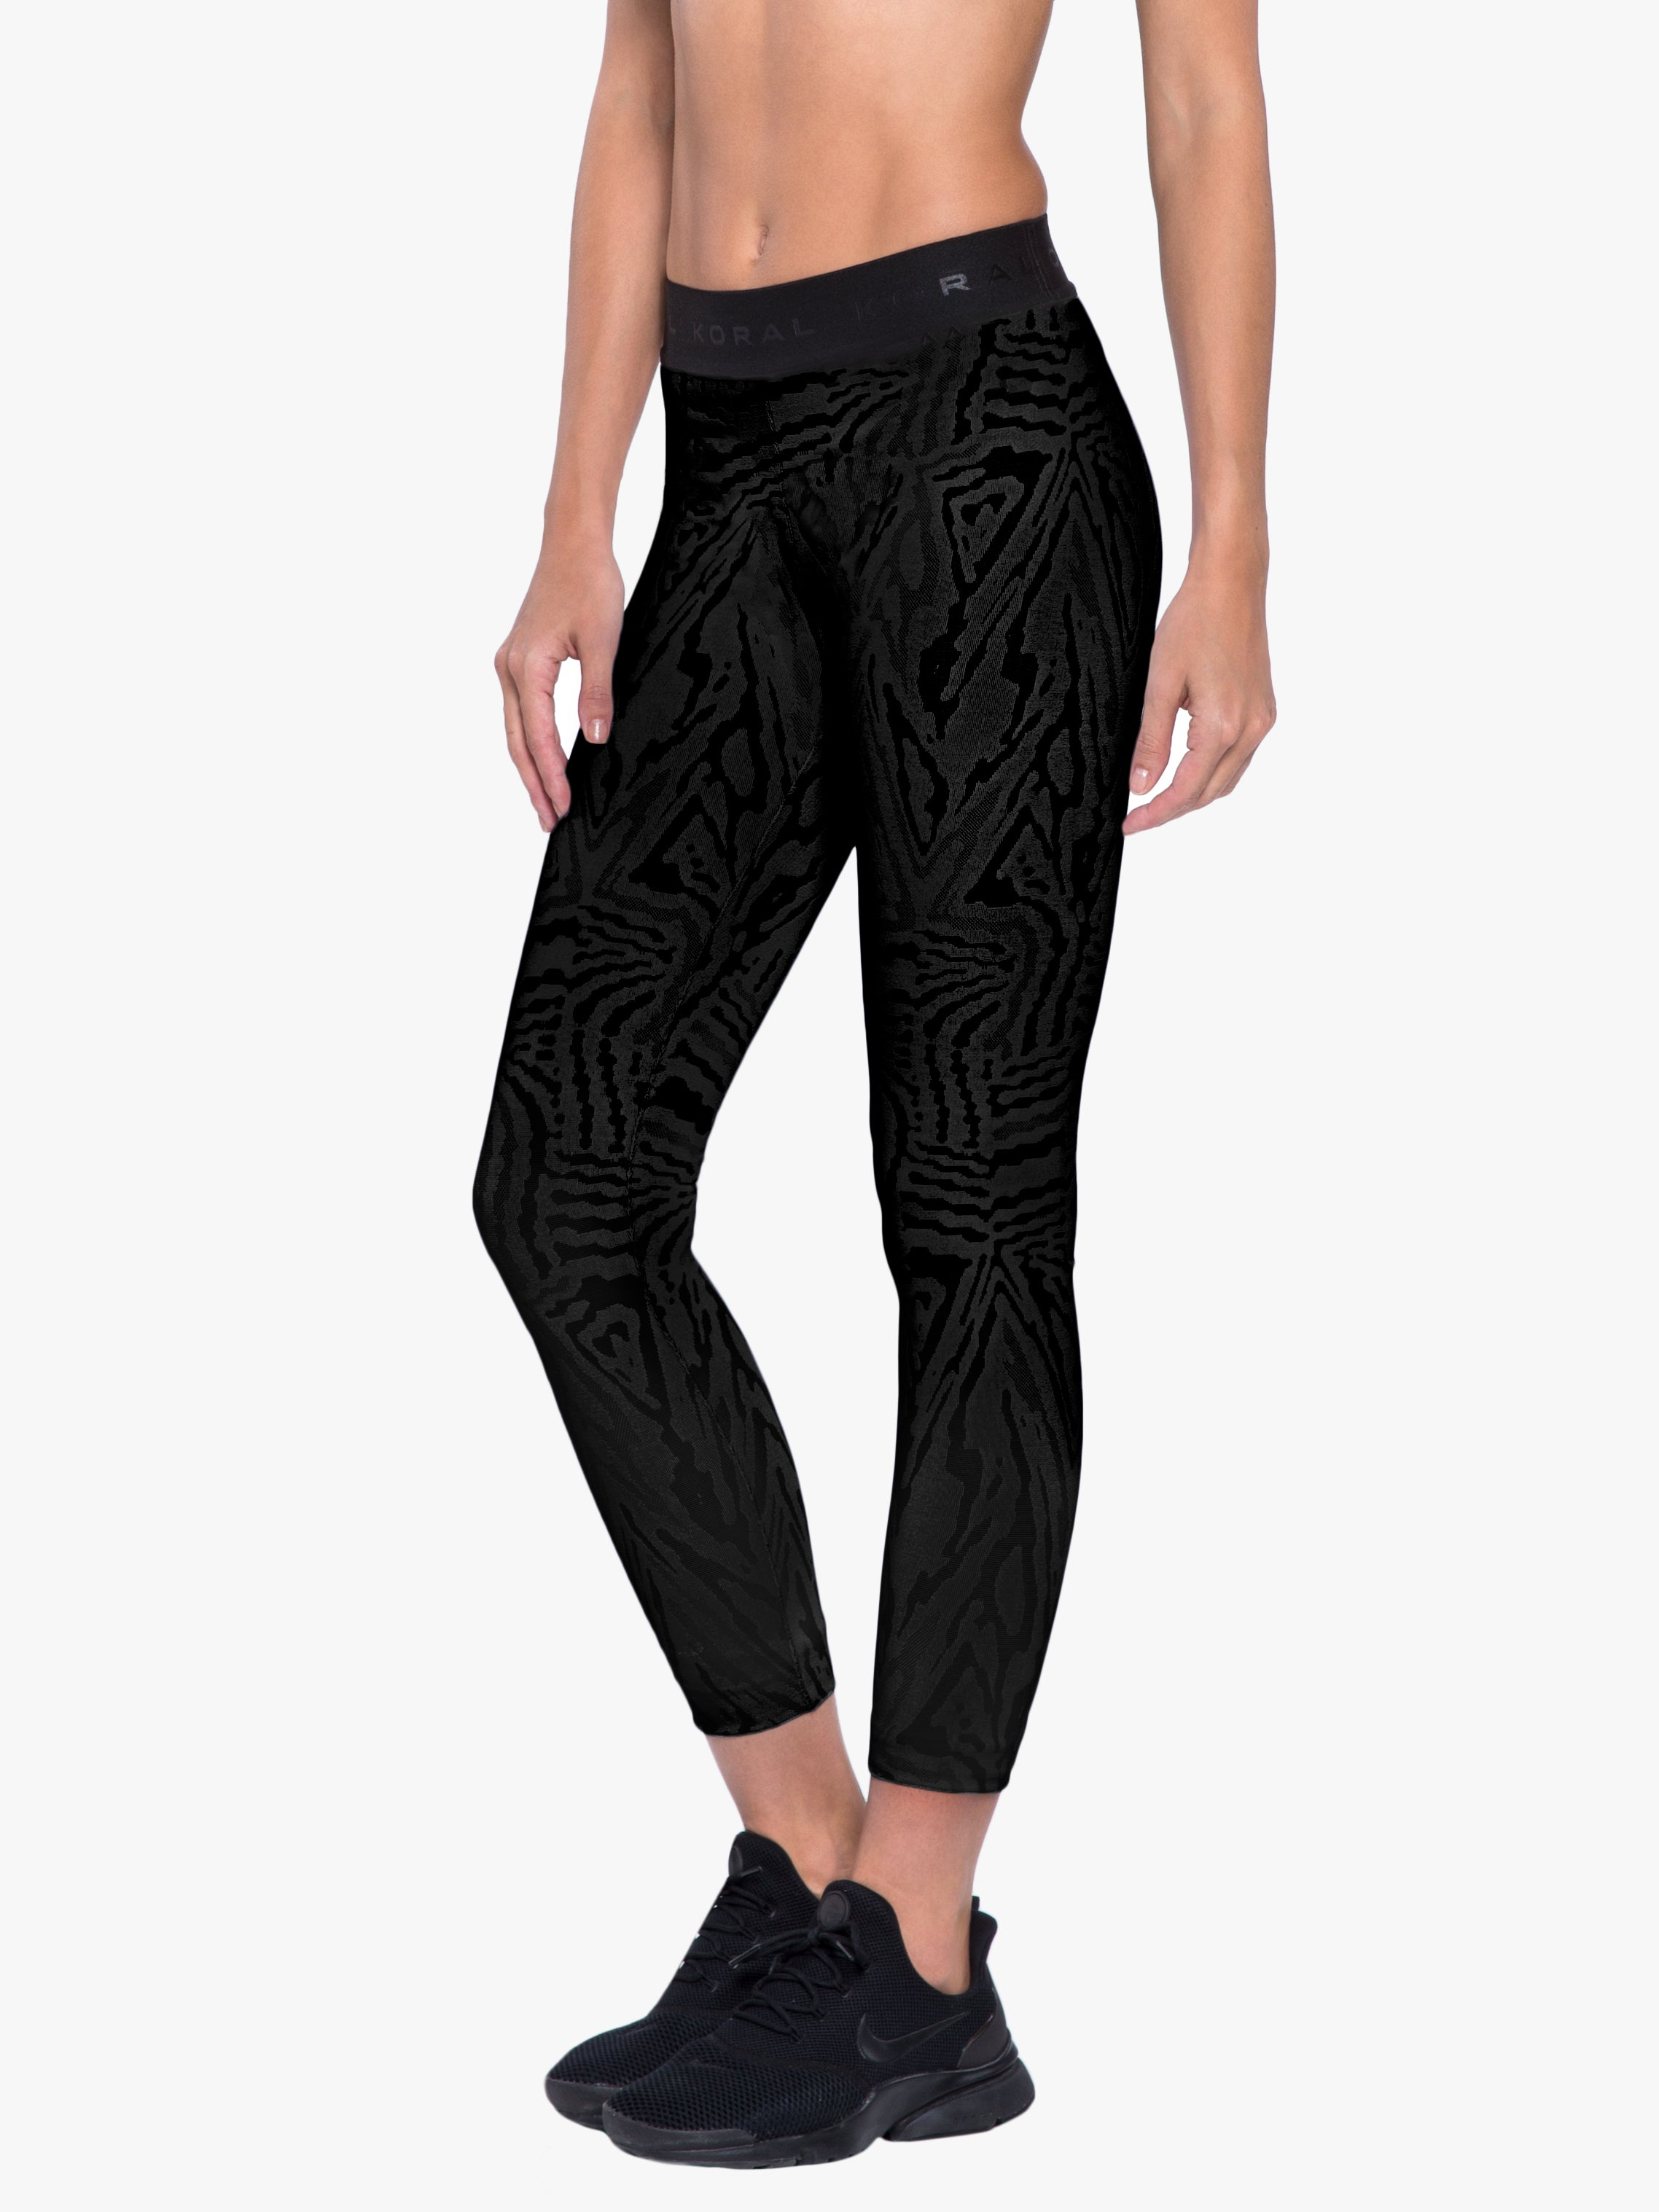 Knockout Jacquard Legging - Black Galaxy